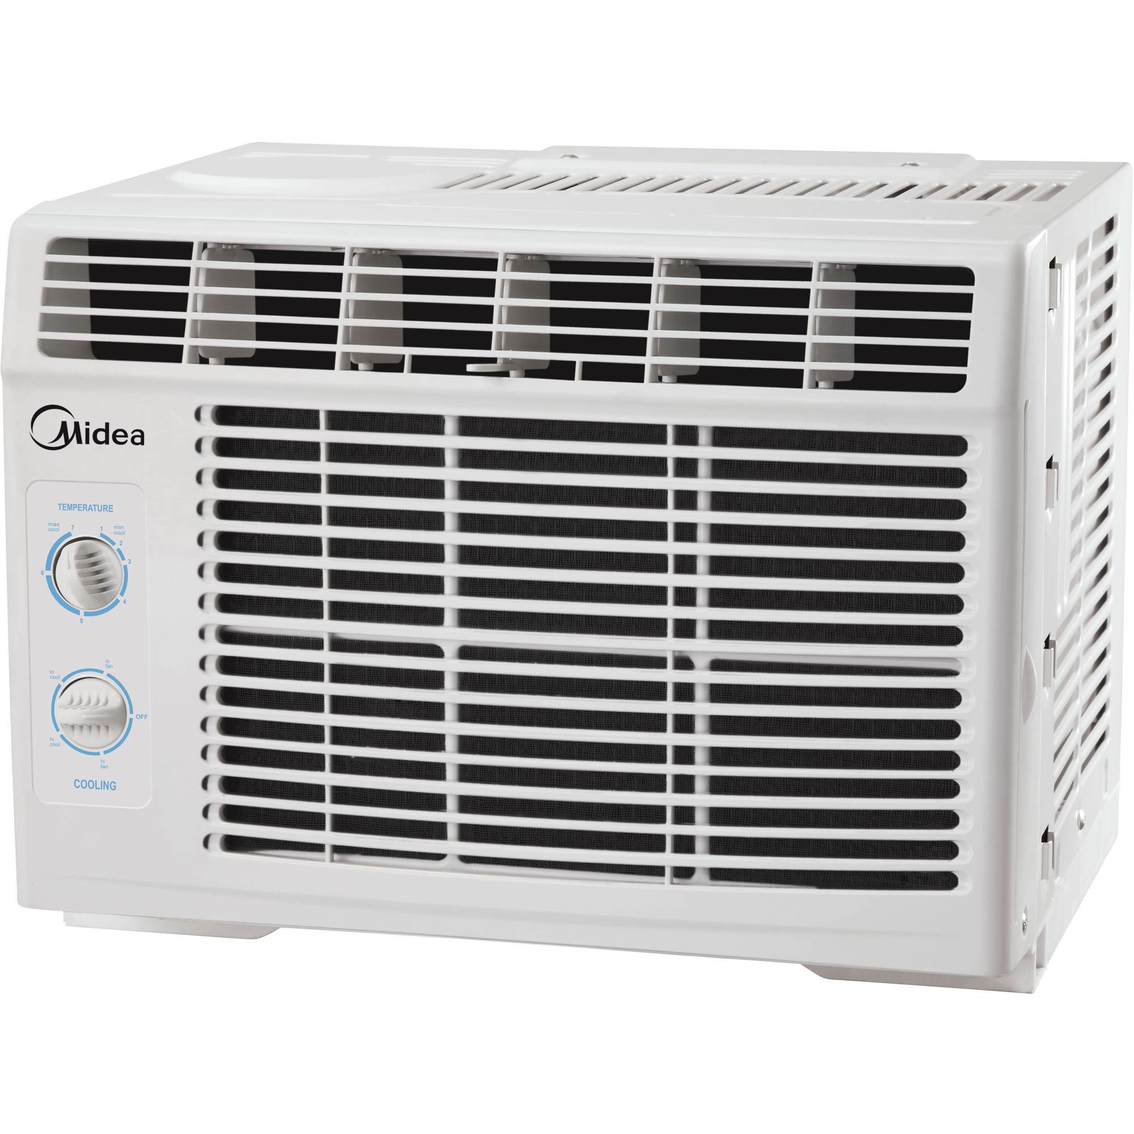 Pin Window Air Conditioners Shop Slider Casement Conditioner on  #326E99